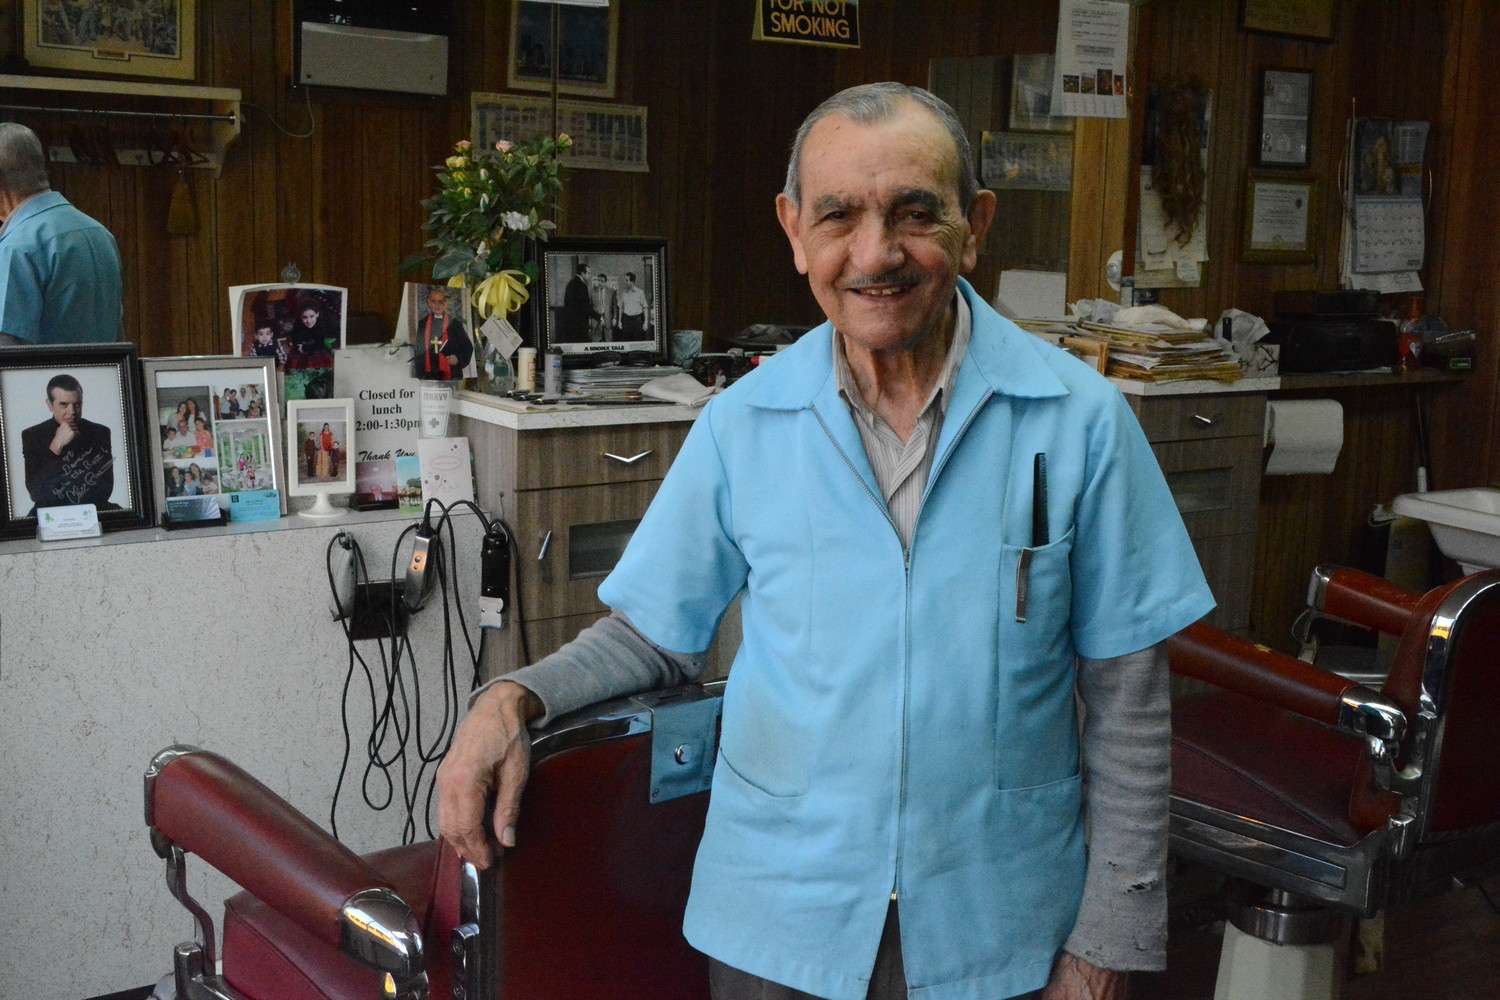 Eighty-six-year-old Dominick Neatale, owner of Dominick's Barbershop, is retiring after 53 years of cutting hair in Baldwin.